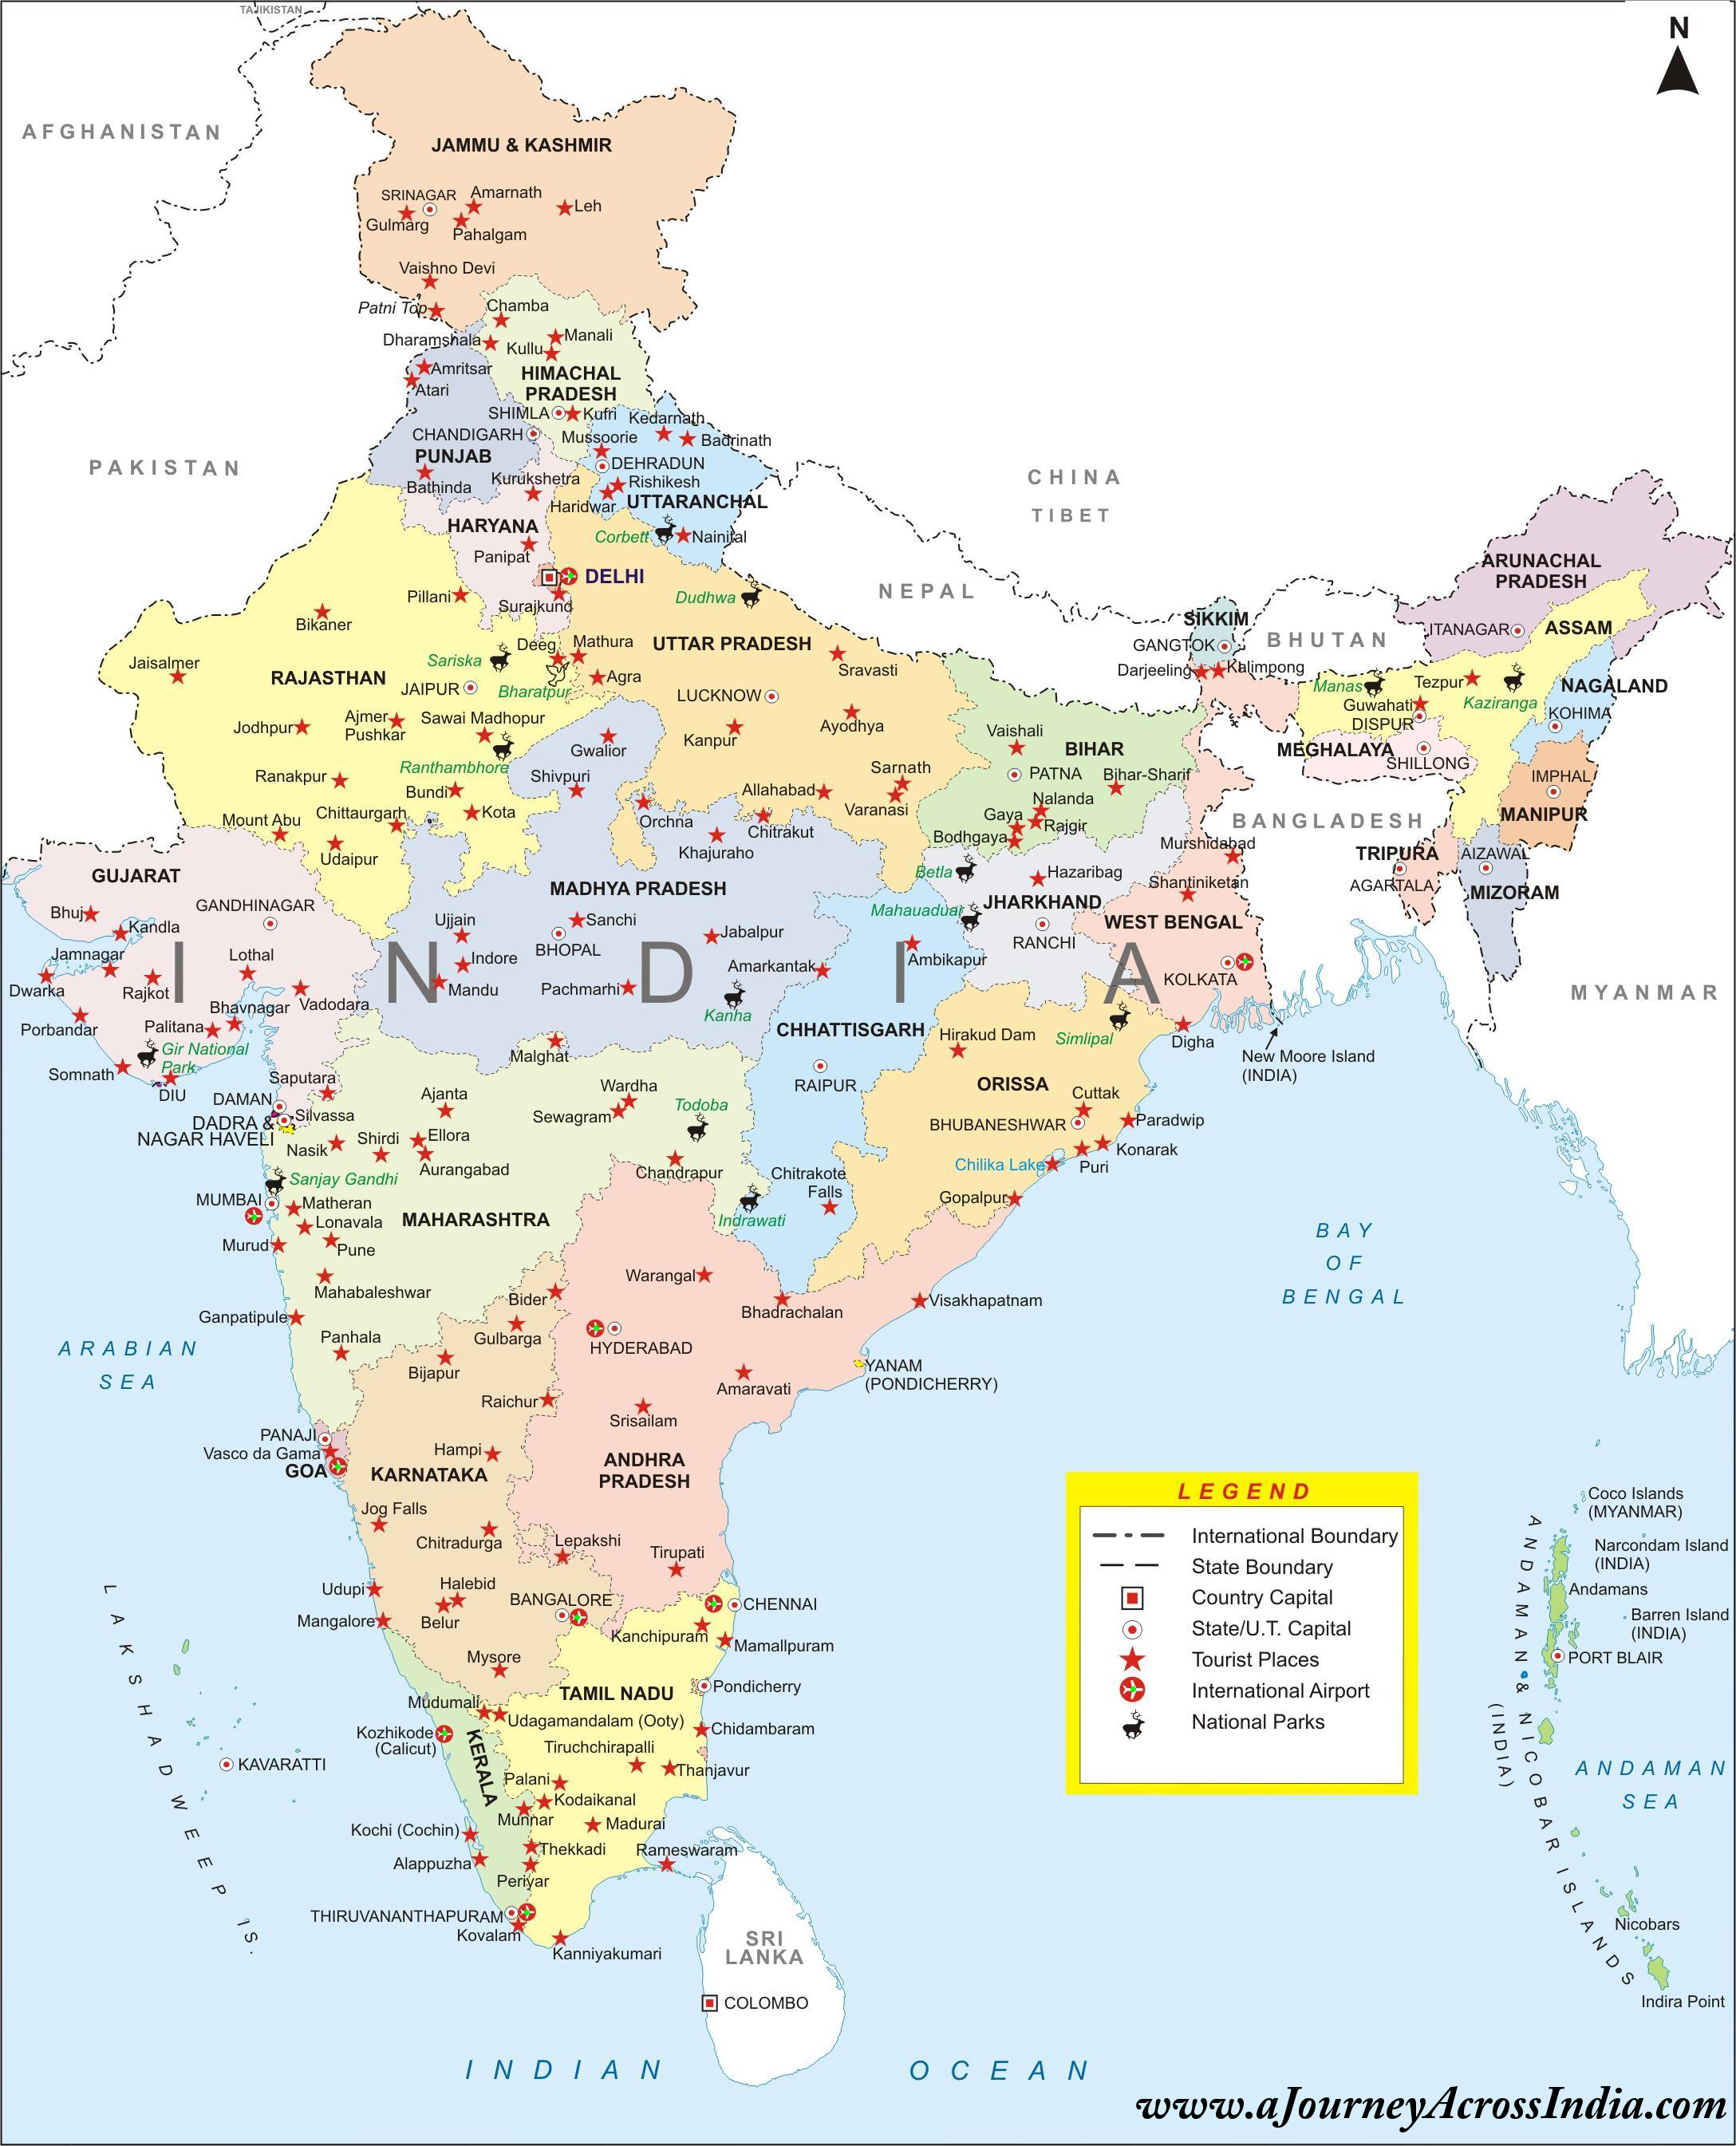 High Resolution Map of India